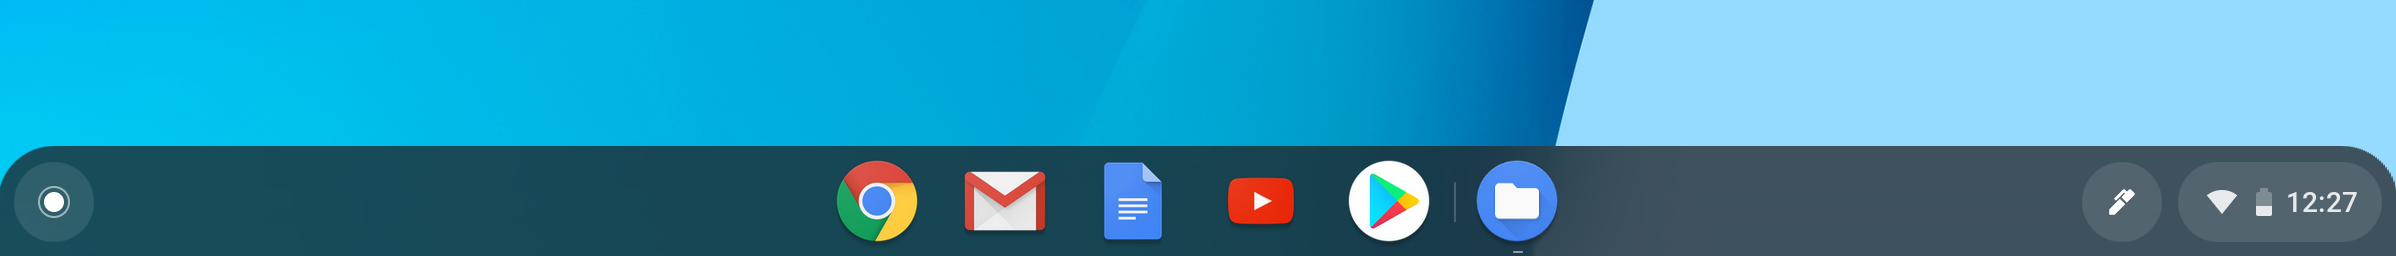 ChromeOS Navigation Bar